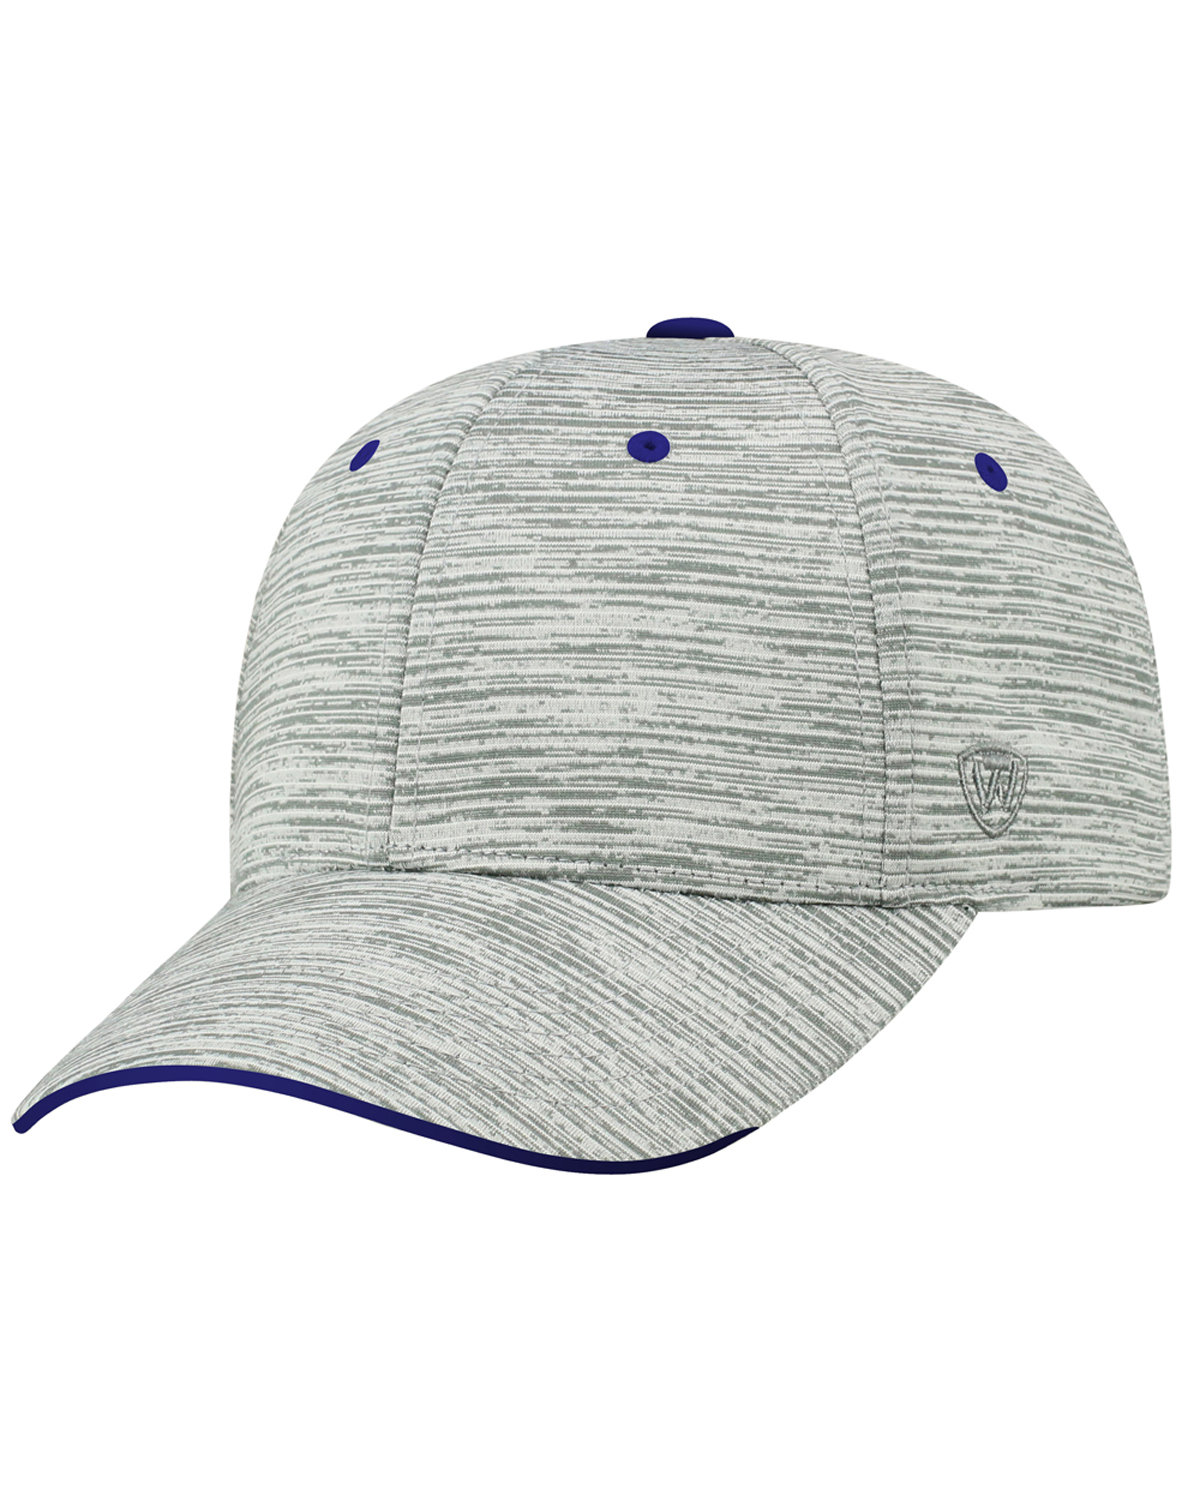 Top Of The World Adult Ballaholla Cap NAVY